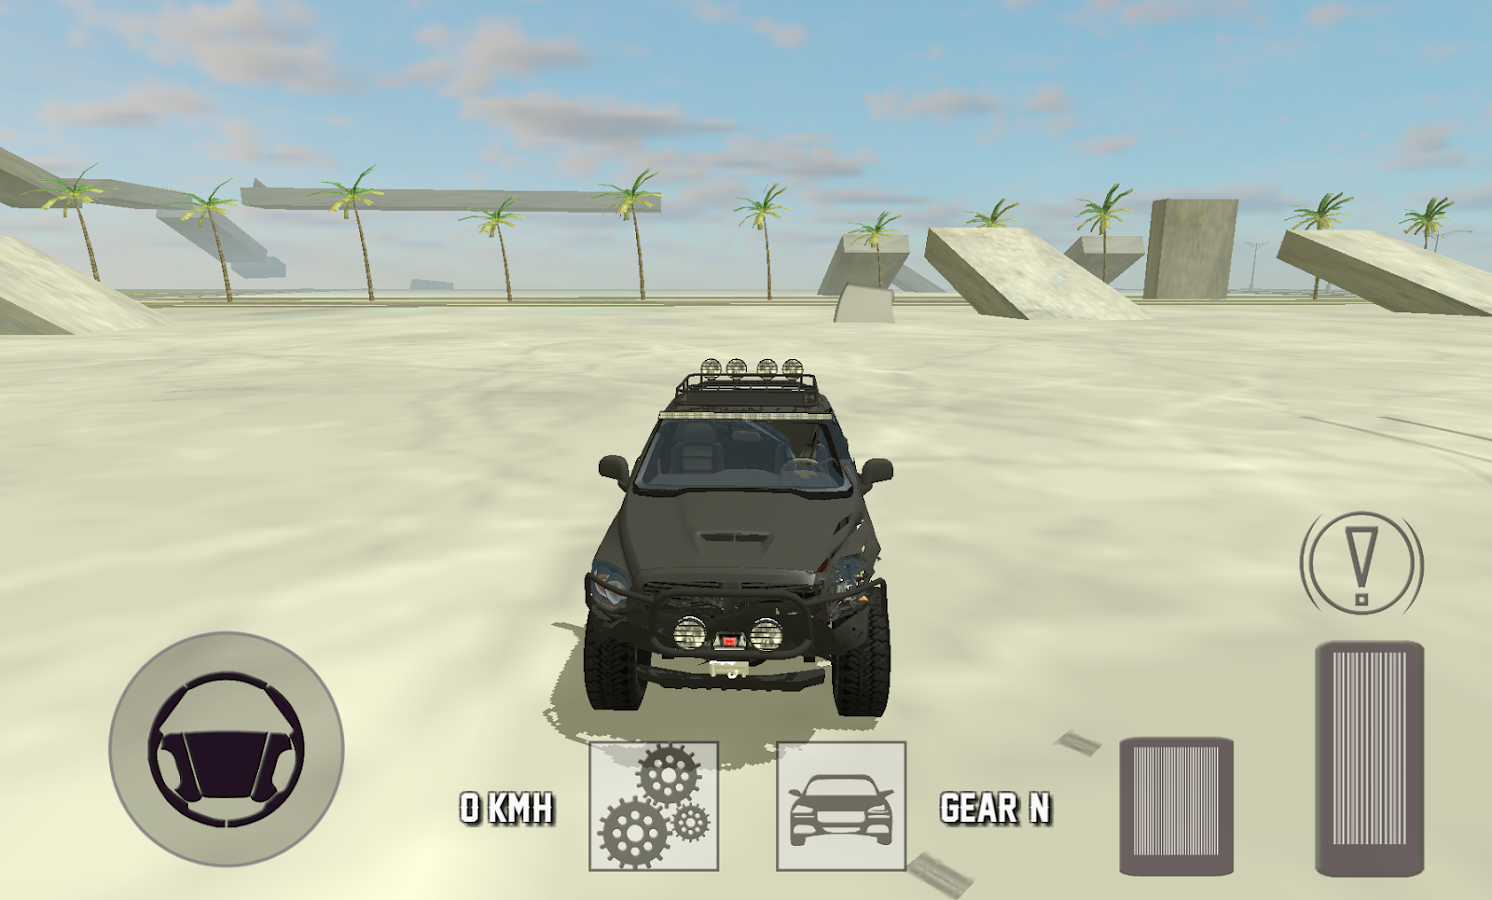 x offroad truck android apps on google play 4x4 offroad truck screenshot